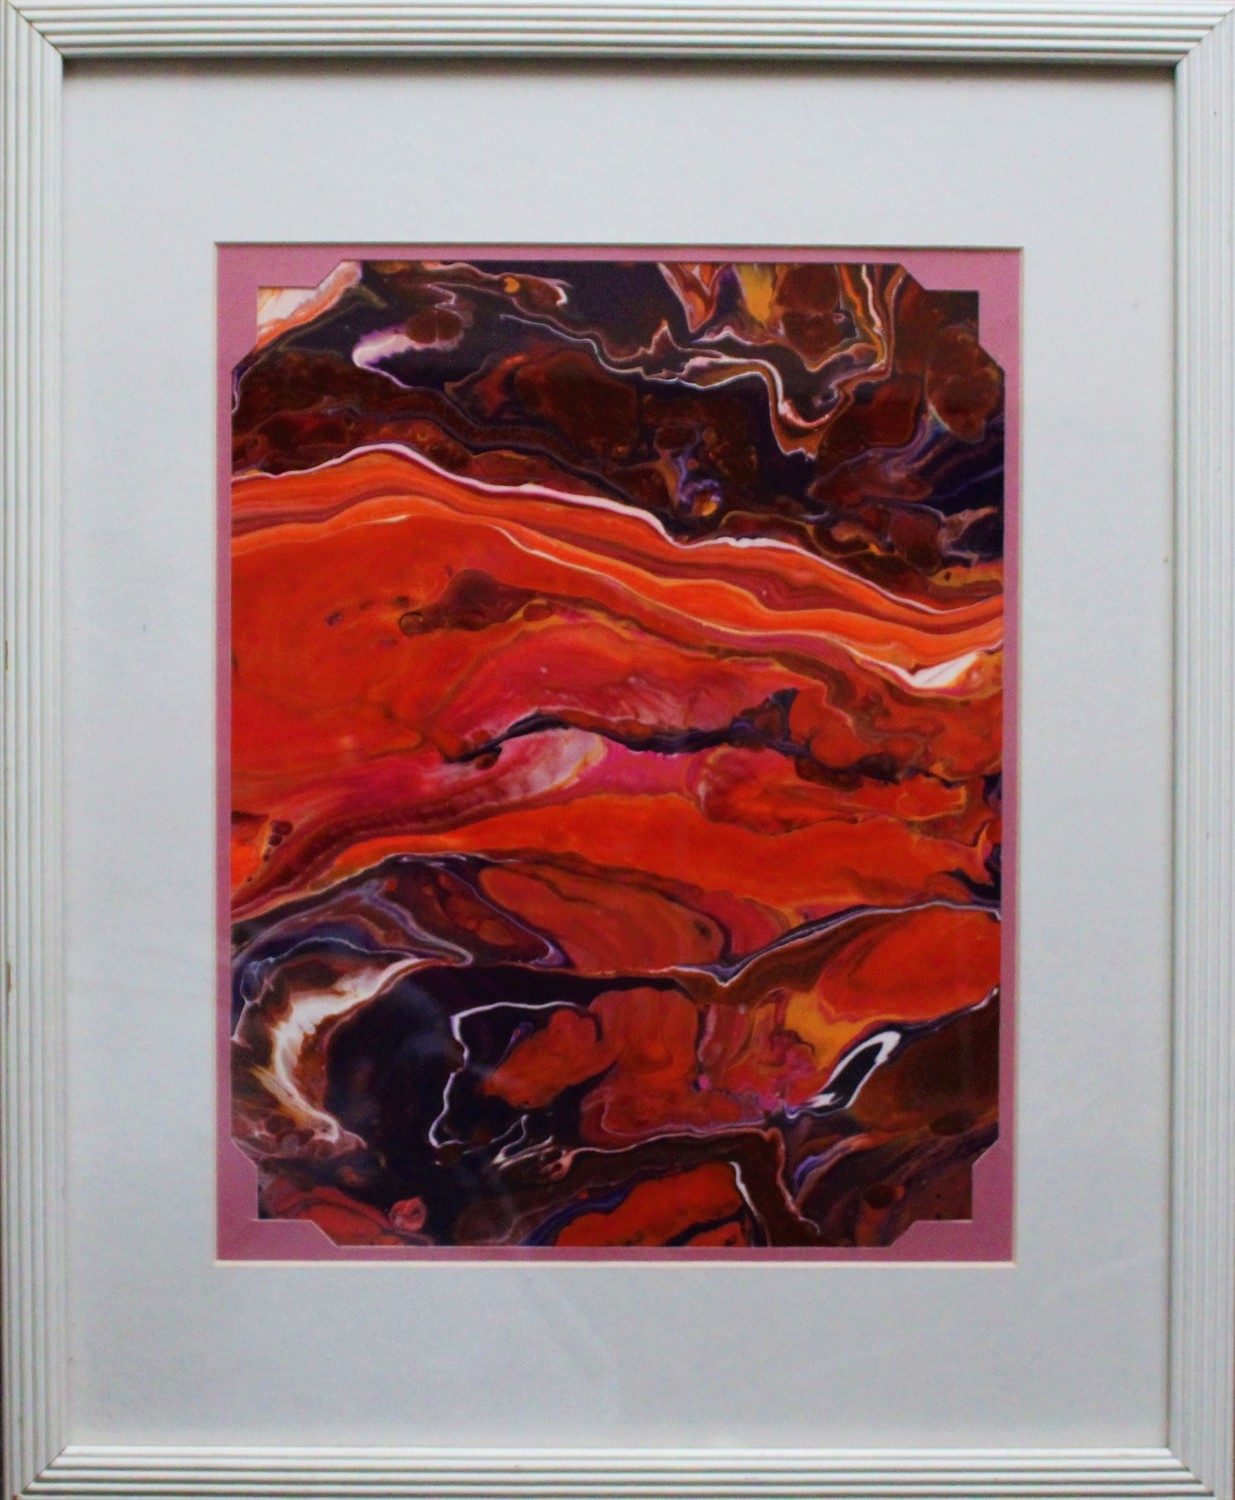 "18 X 22 ORIGINAL ABSTRACT PAINTING: ""ERUPTION"""